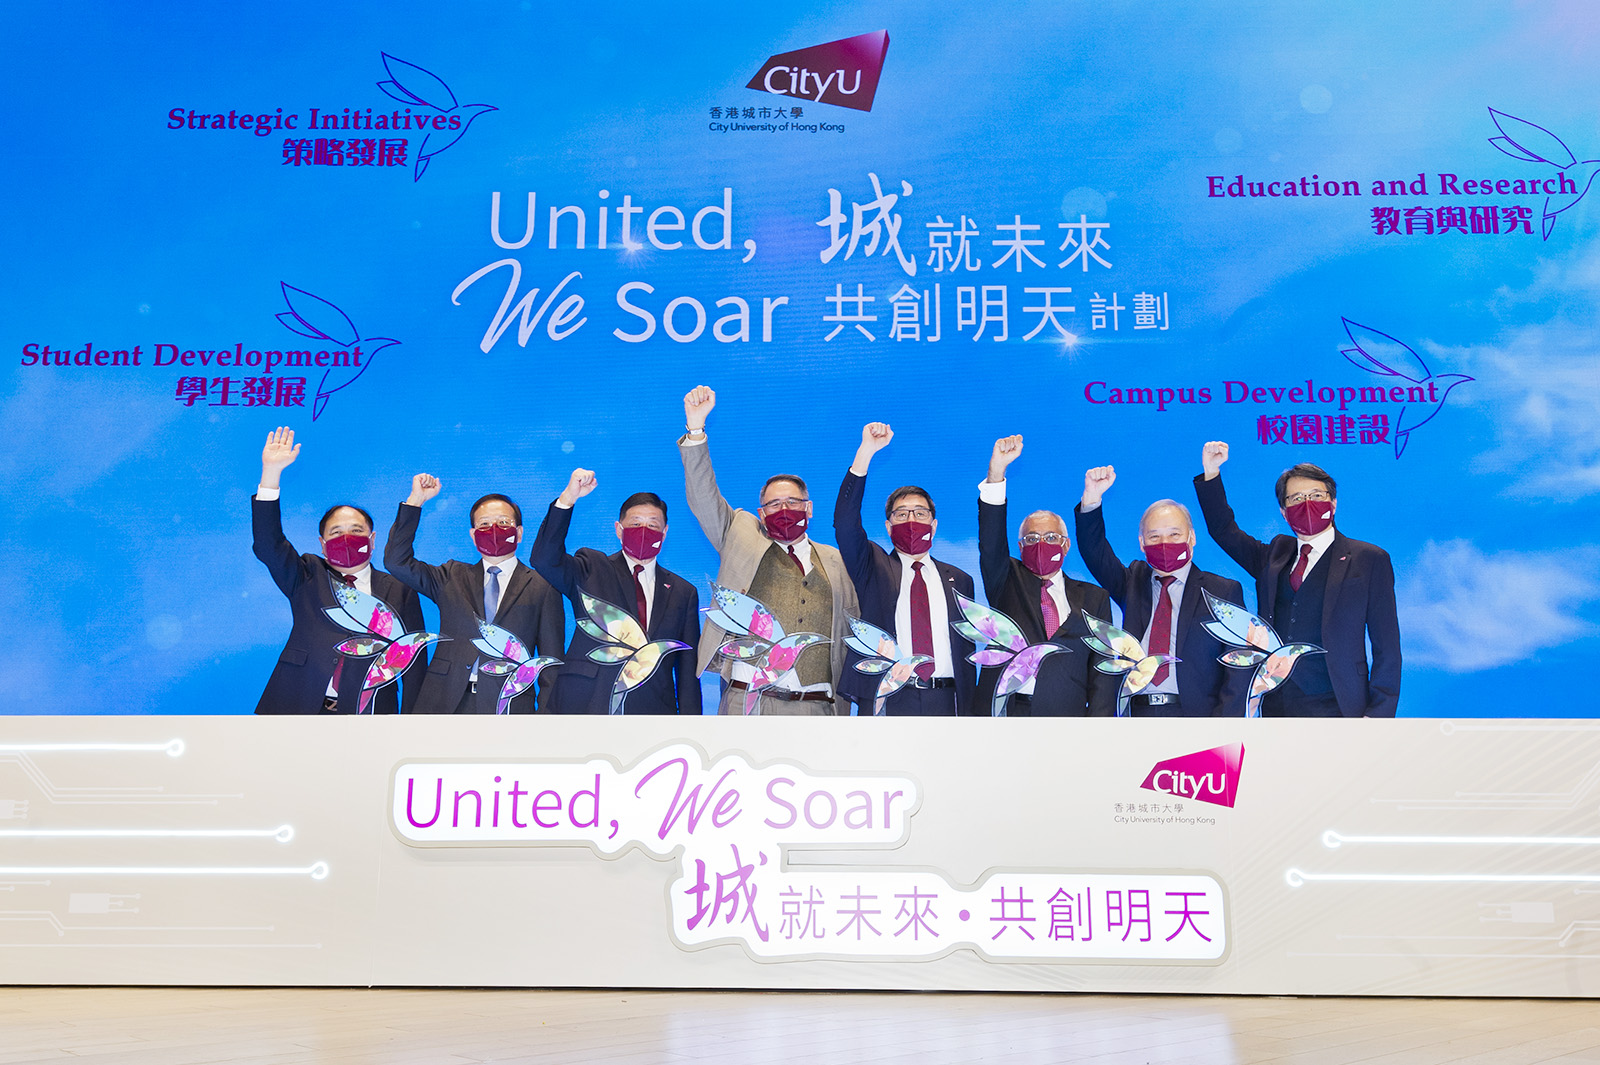 """United, We Soar"" campaign ushers in new era for CityU"